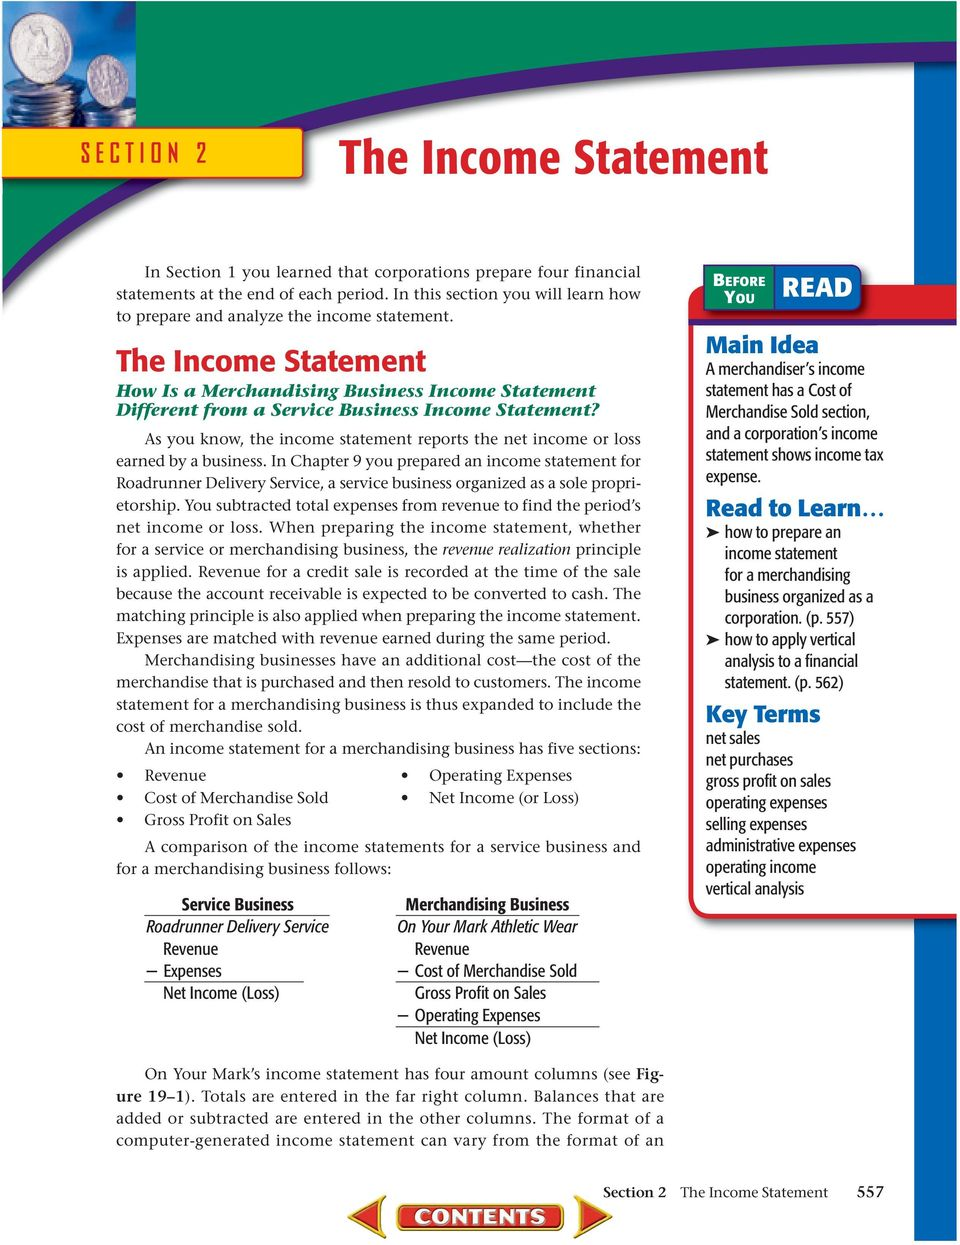 The Income Statement How Is a Merchandising Business Income Statement Different from a Service Business Income Statement?